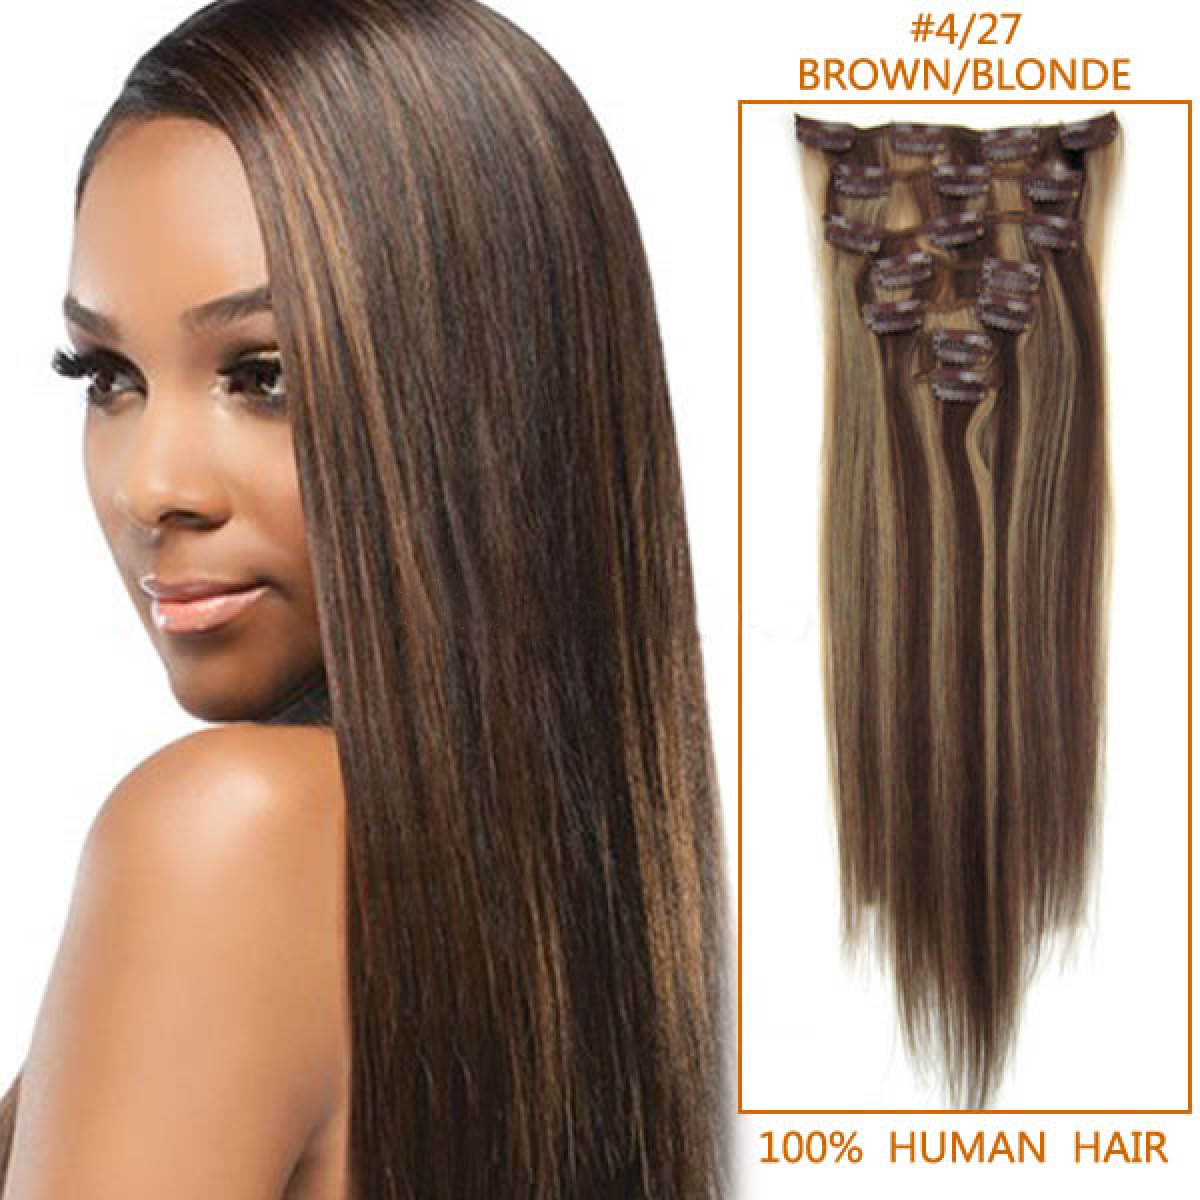 Difference Between Remy Hair And Human Hair Extensions 38